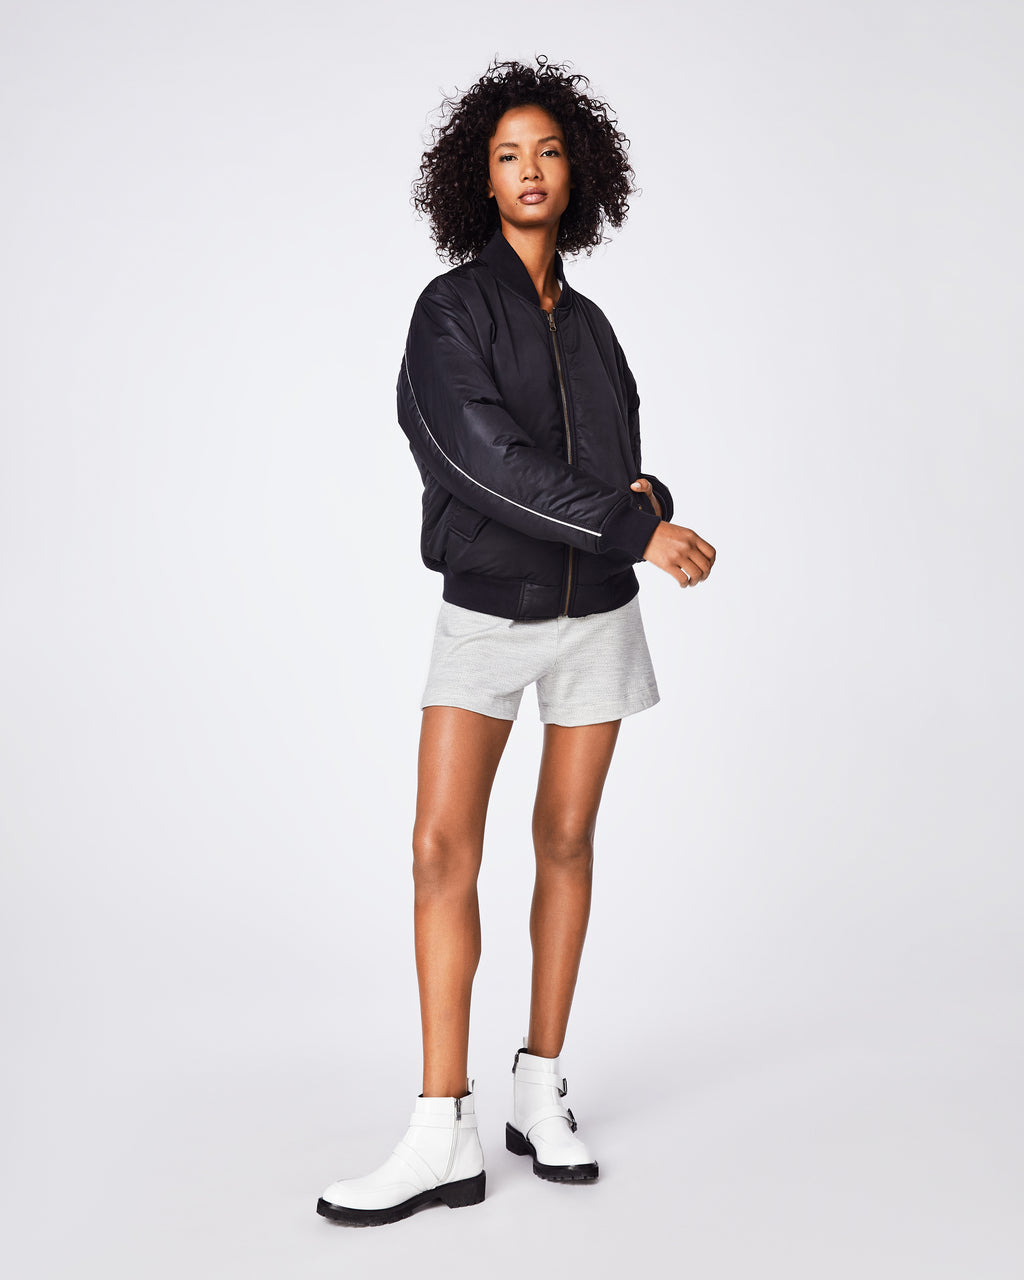 BQ10317 - REVERSIBLE BOMBER - outerwear - coats - THIS BOMBER IMITATES A CLASSIC VINTAGE ATHLETIC JACKET WITH PIPING DETAIL AND RIBBED TRIM. EVEN BETTER, IT'S REVERSIBLE: EXPERIMENT WITH BLACK AND A VIVACIOUS POP OF COLOR. Final Sale